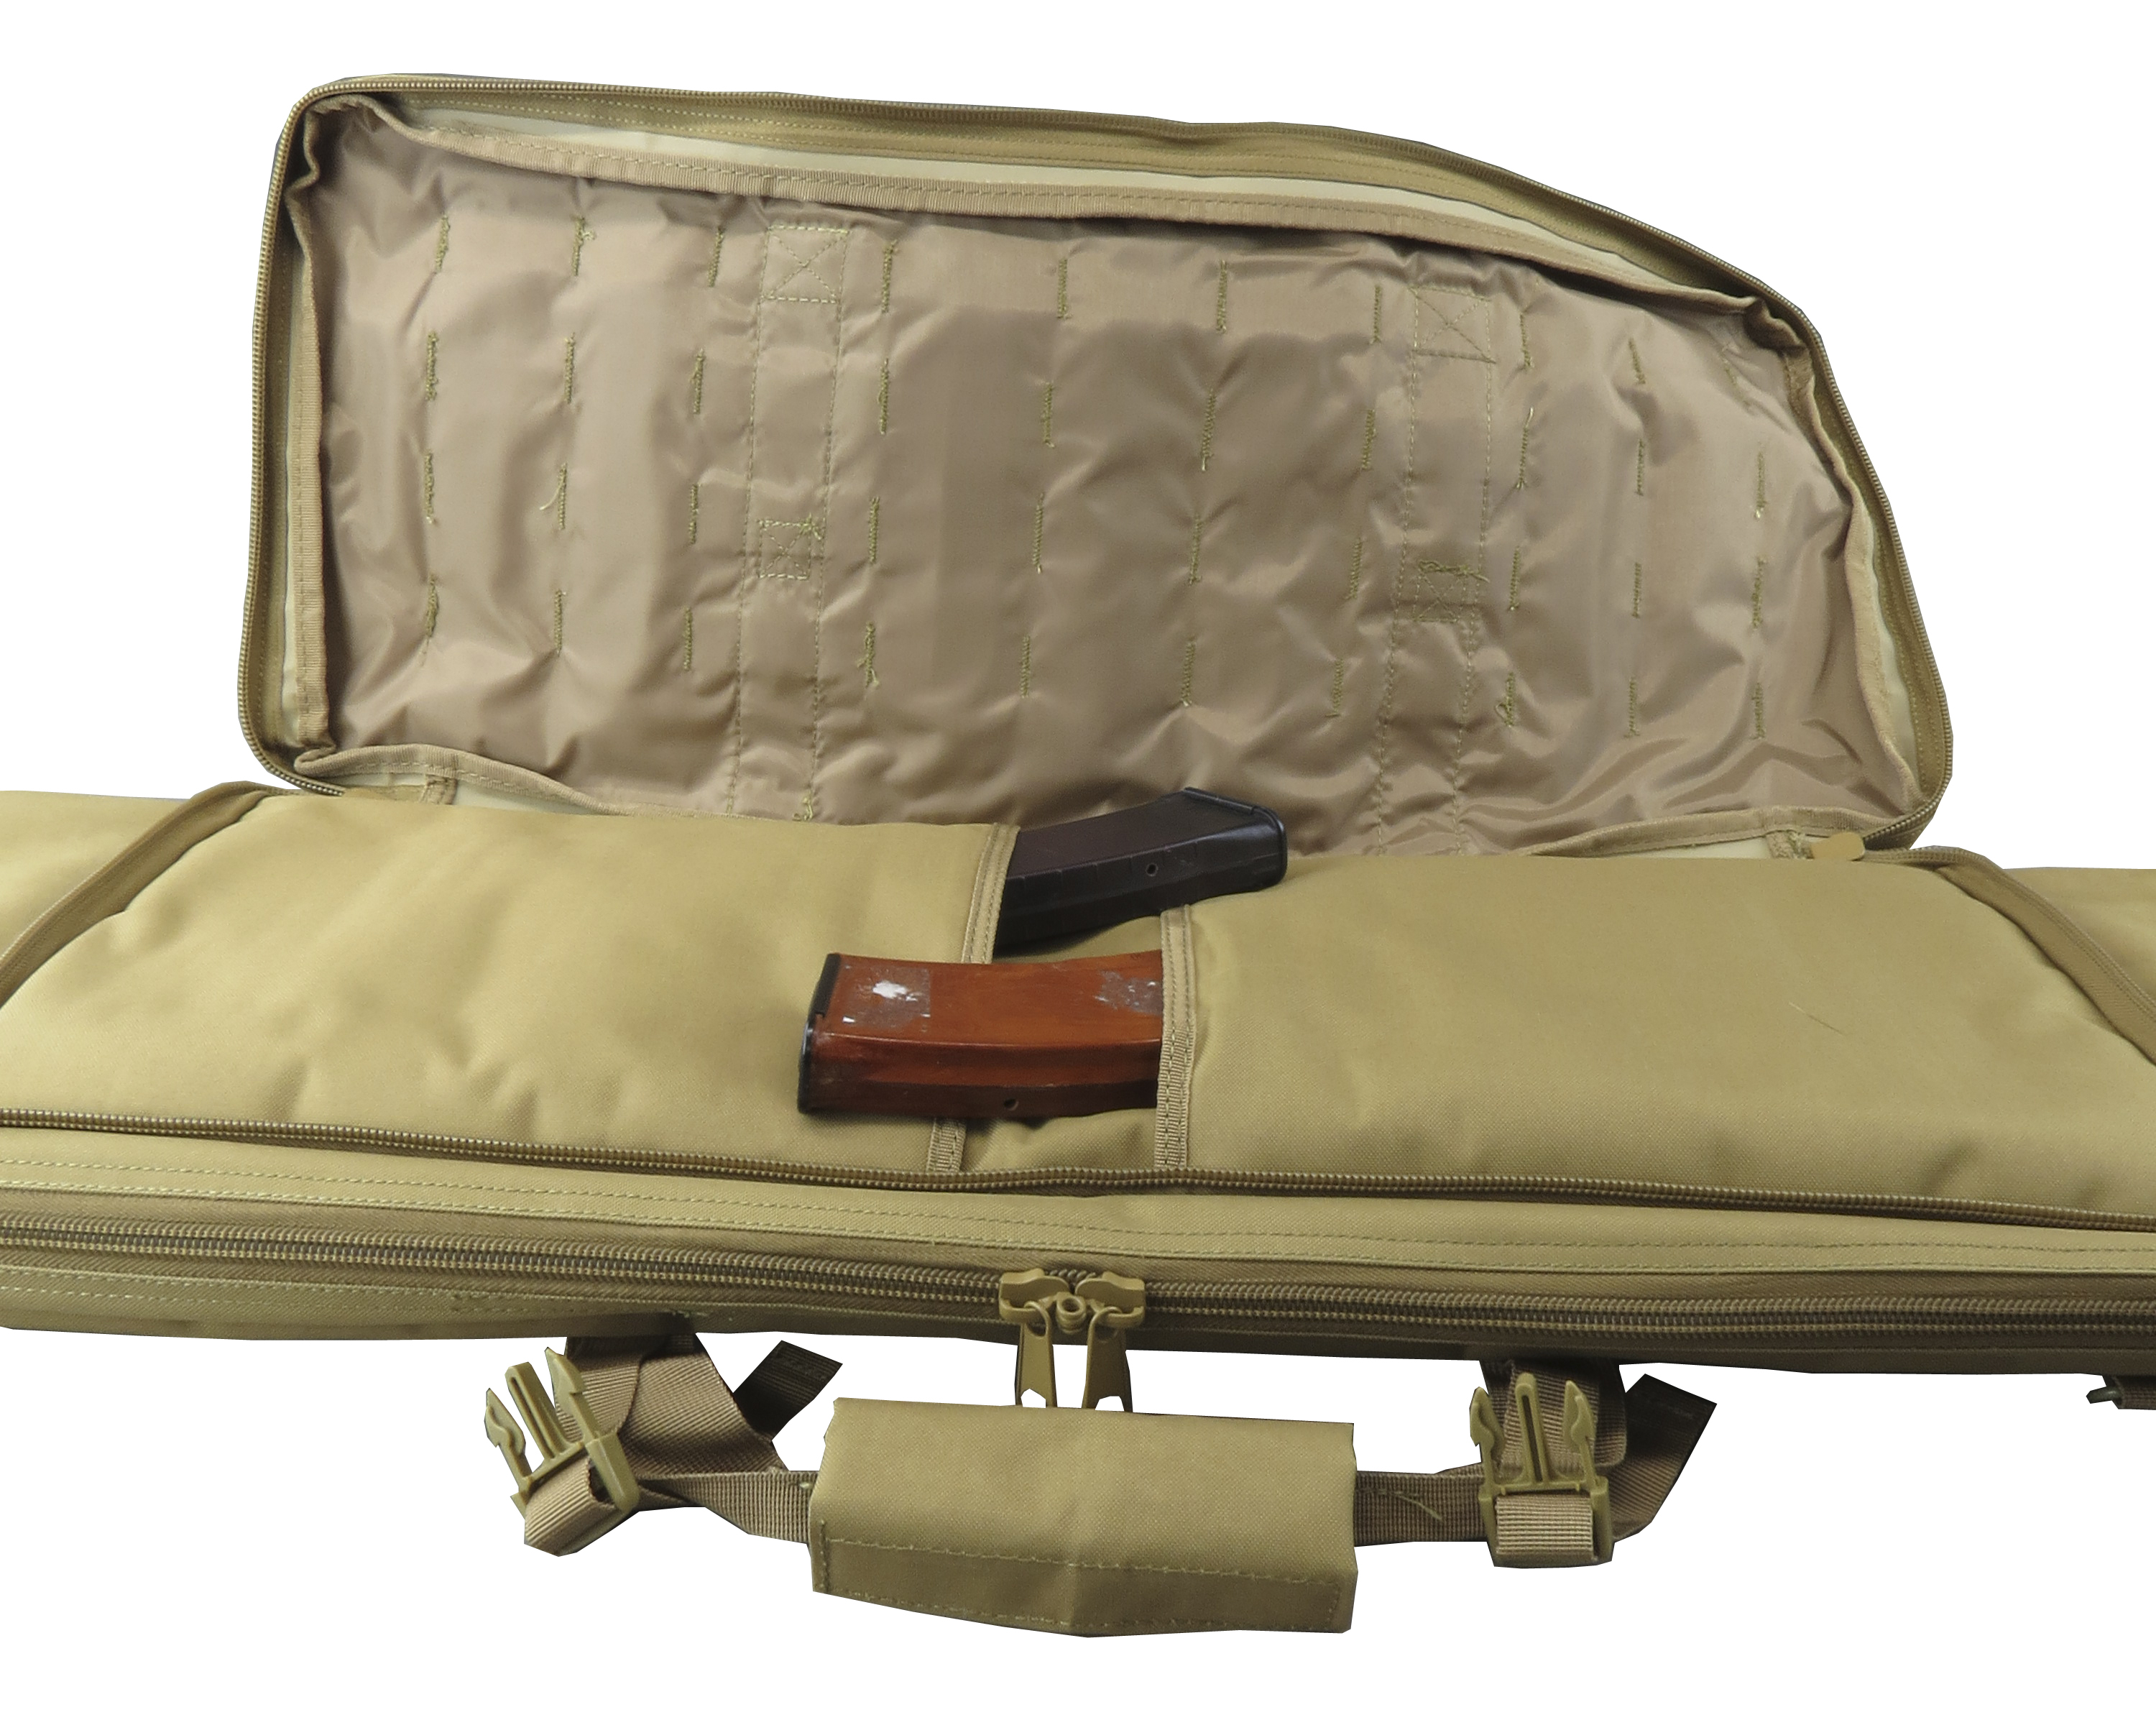 condor_42_single_rifle_case_view_5.jpg